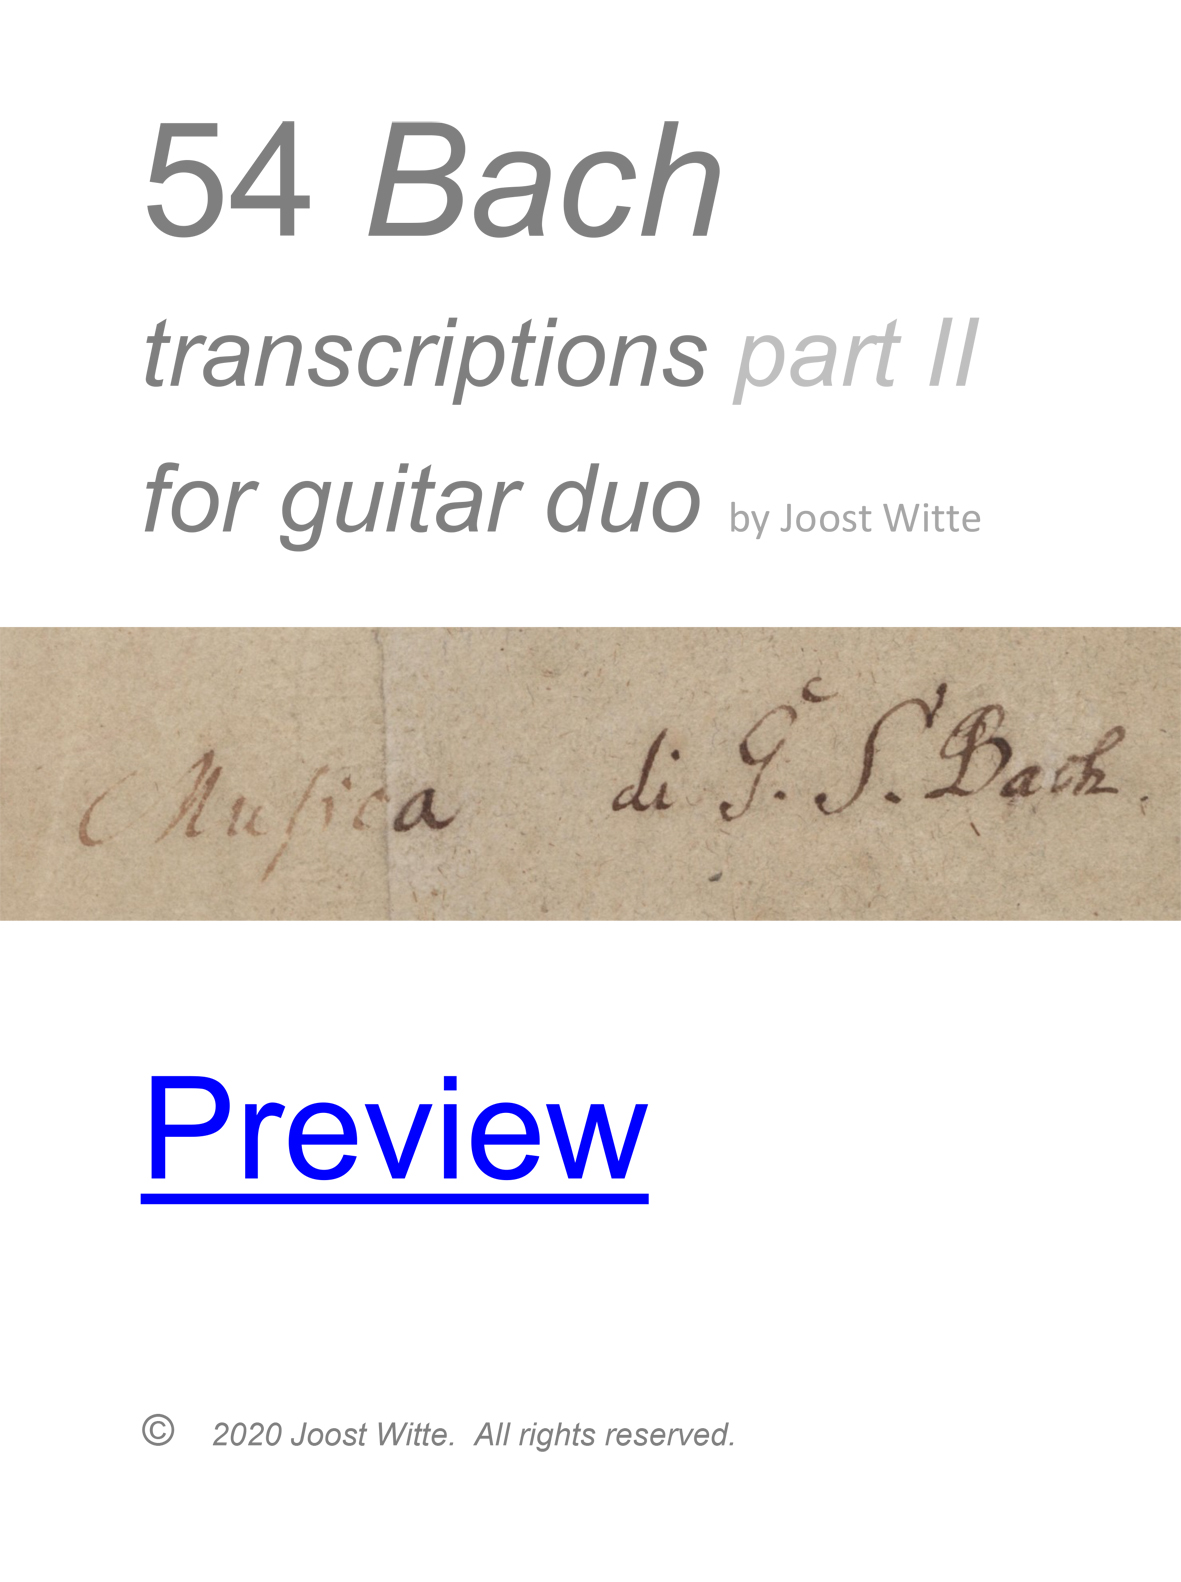 Bach 54 transcriptions part II guitar duo preview eBook